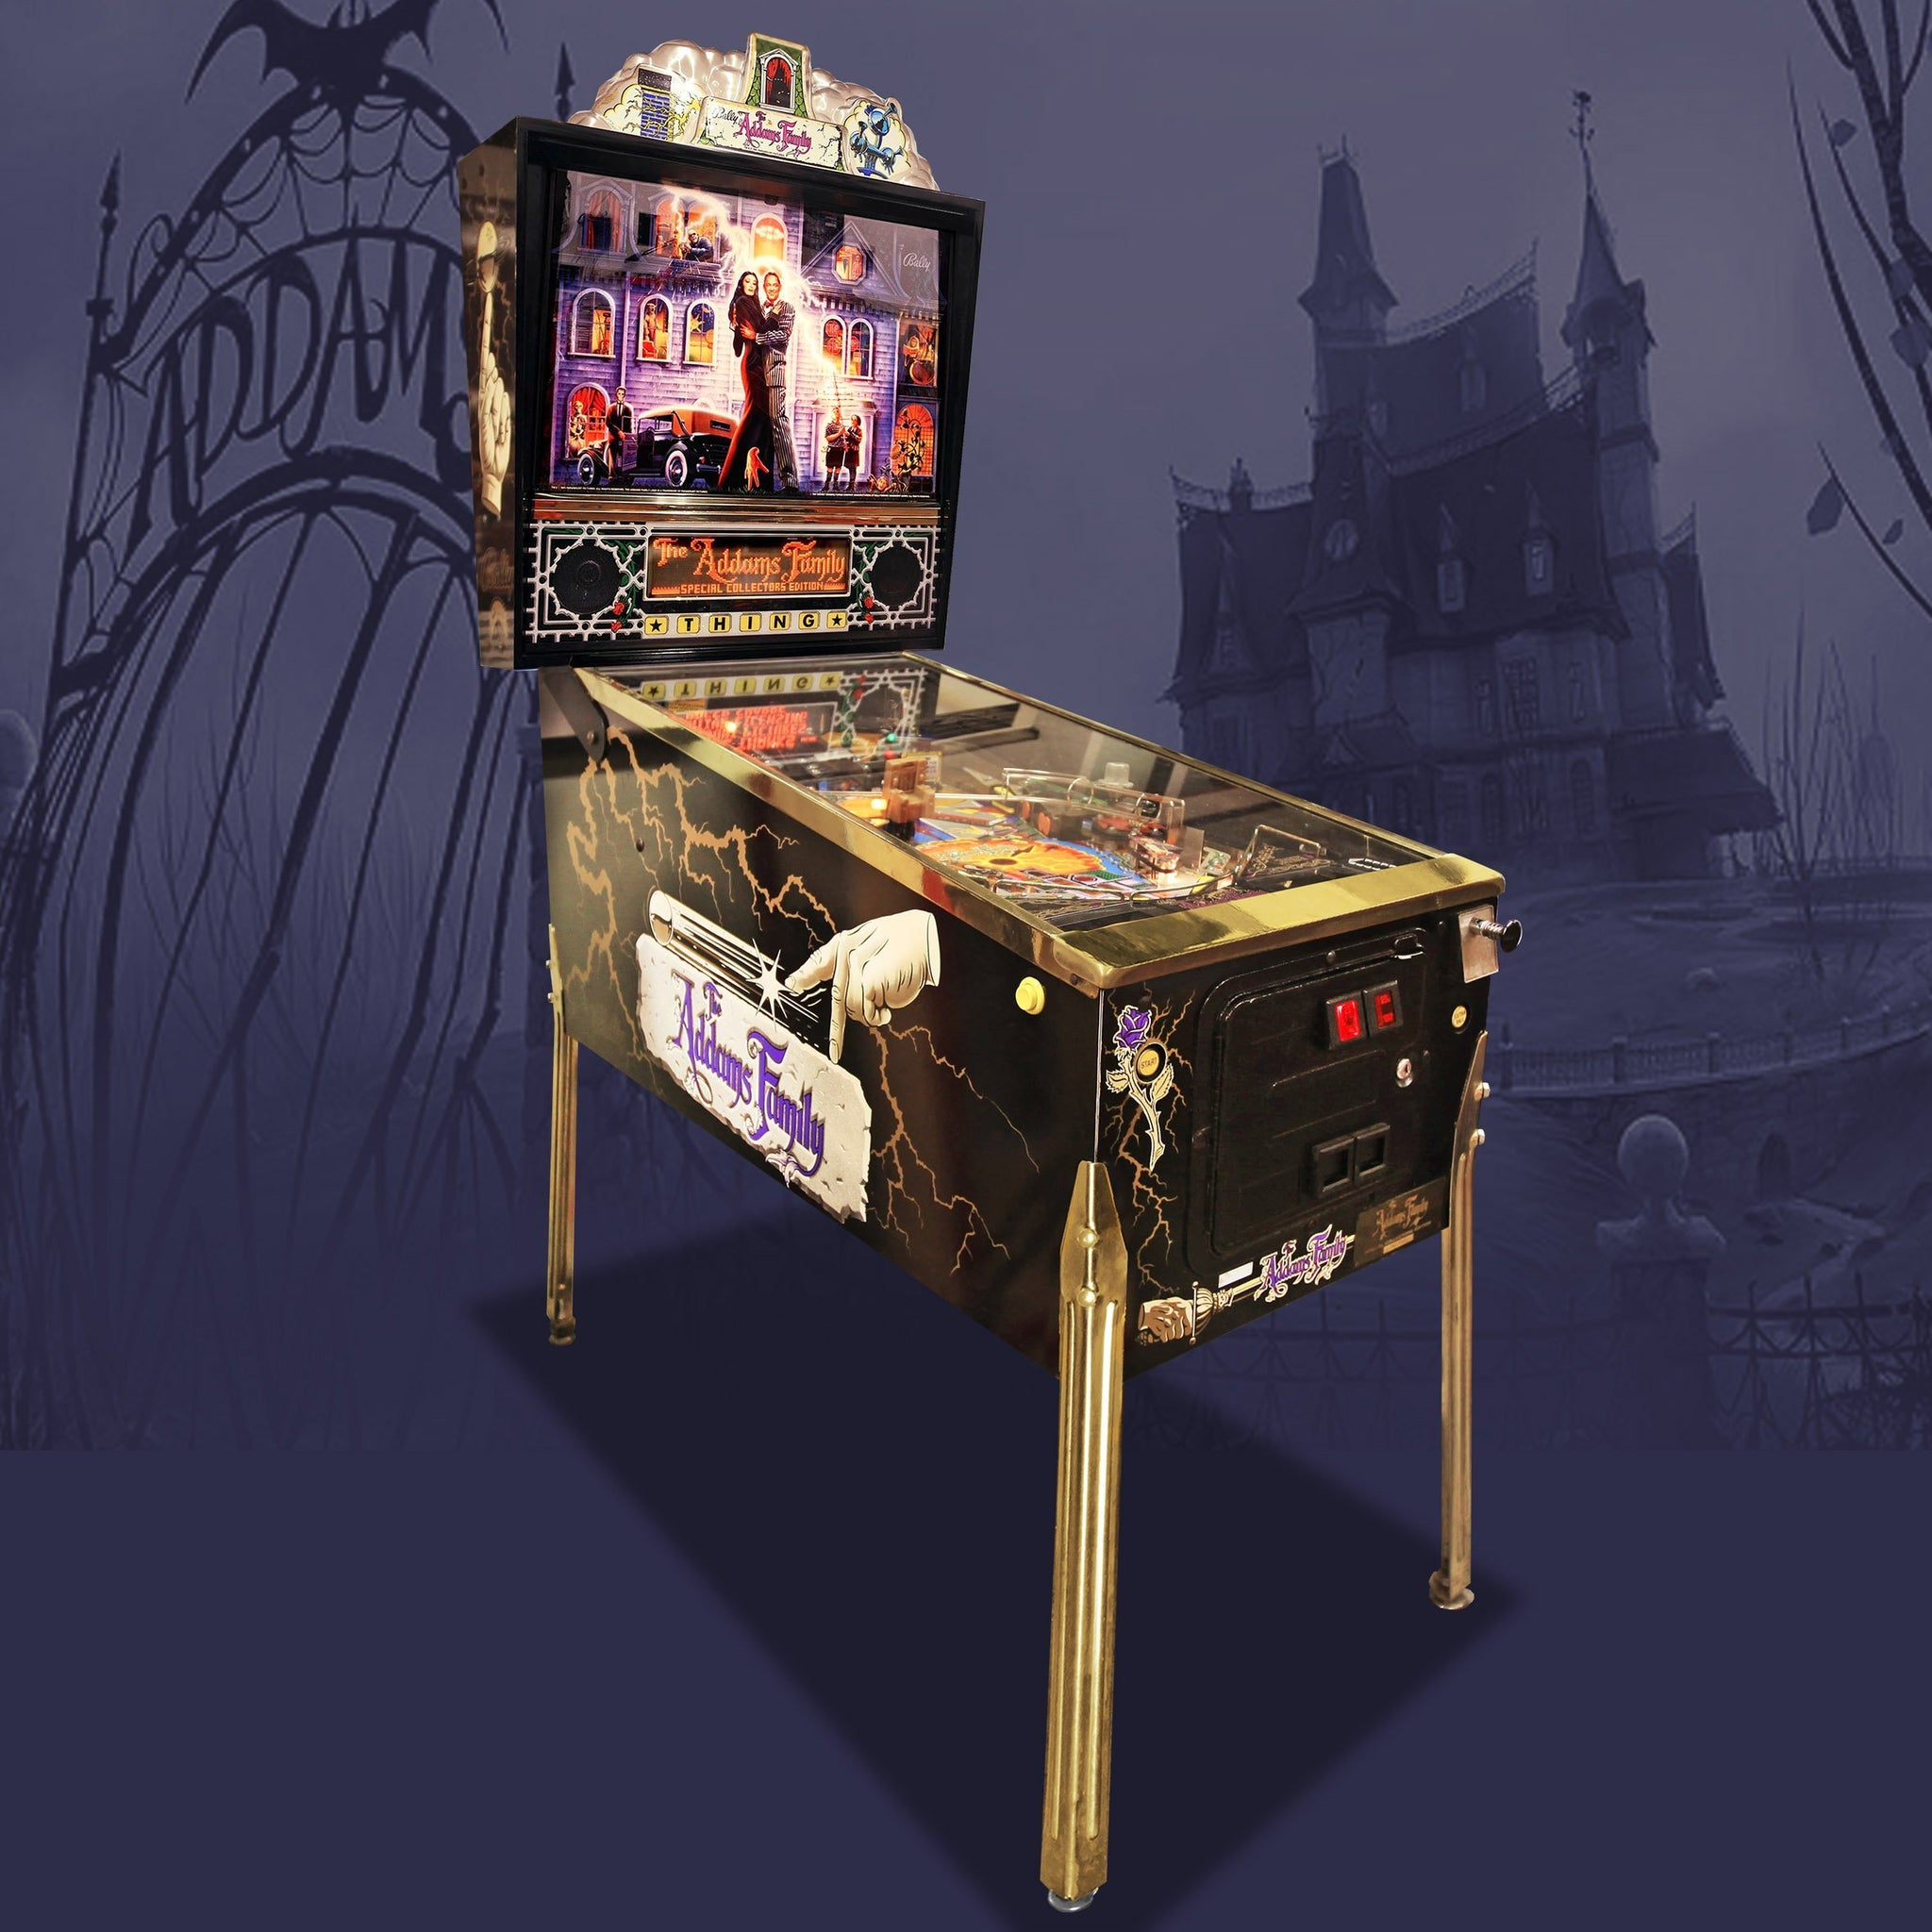 The Addams Family Gold Pinball Machine